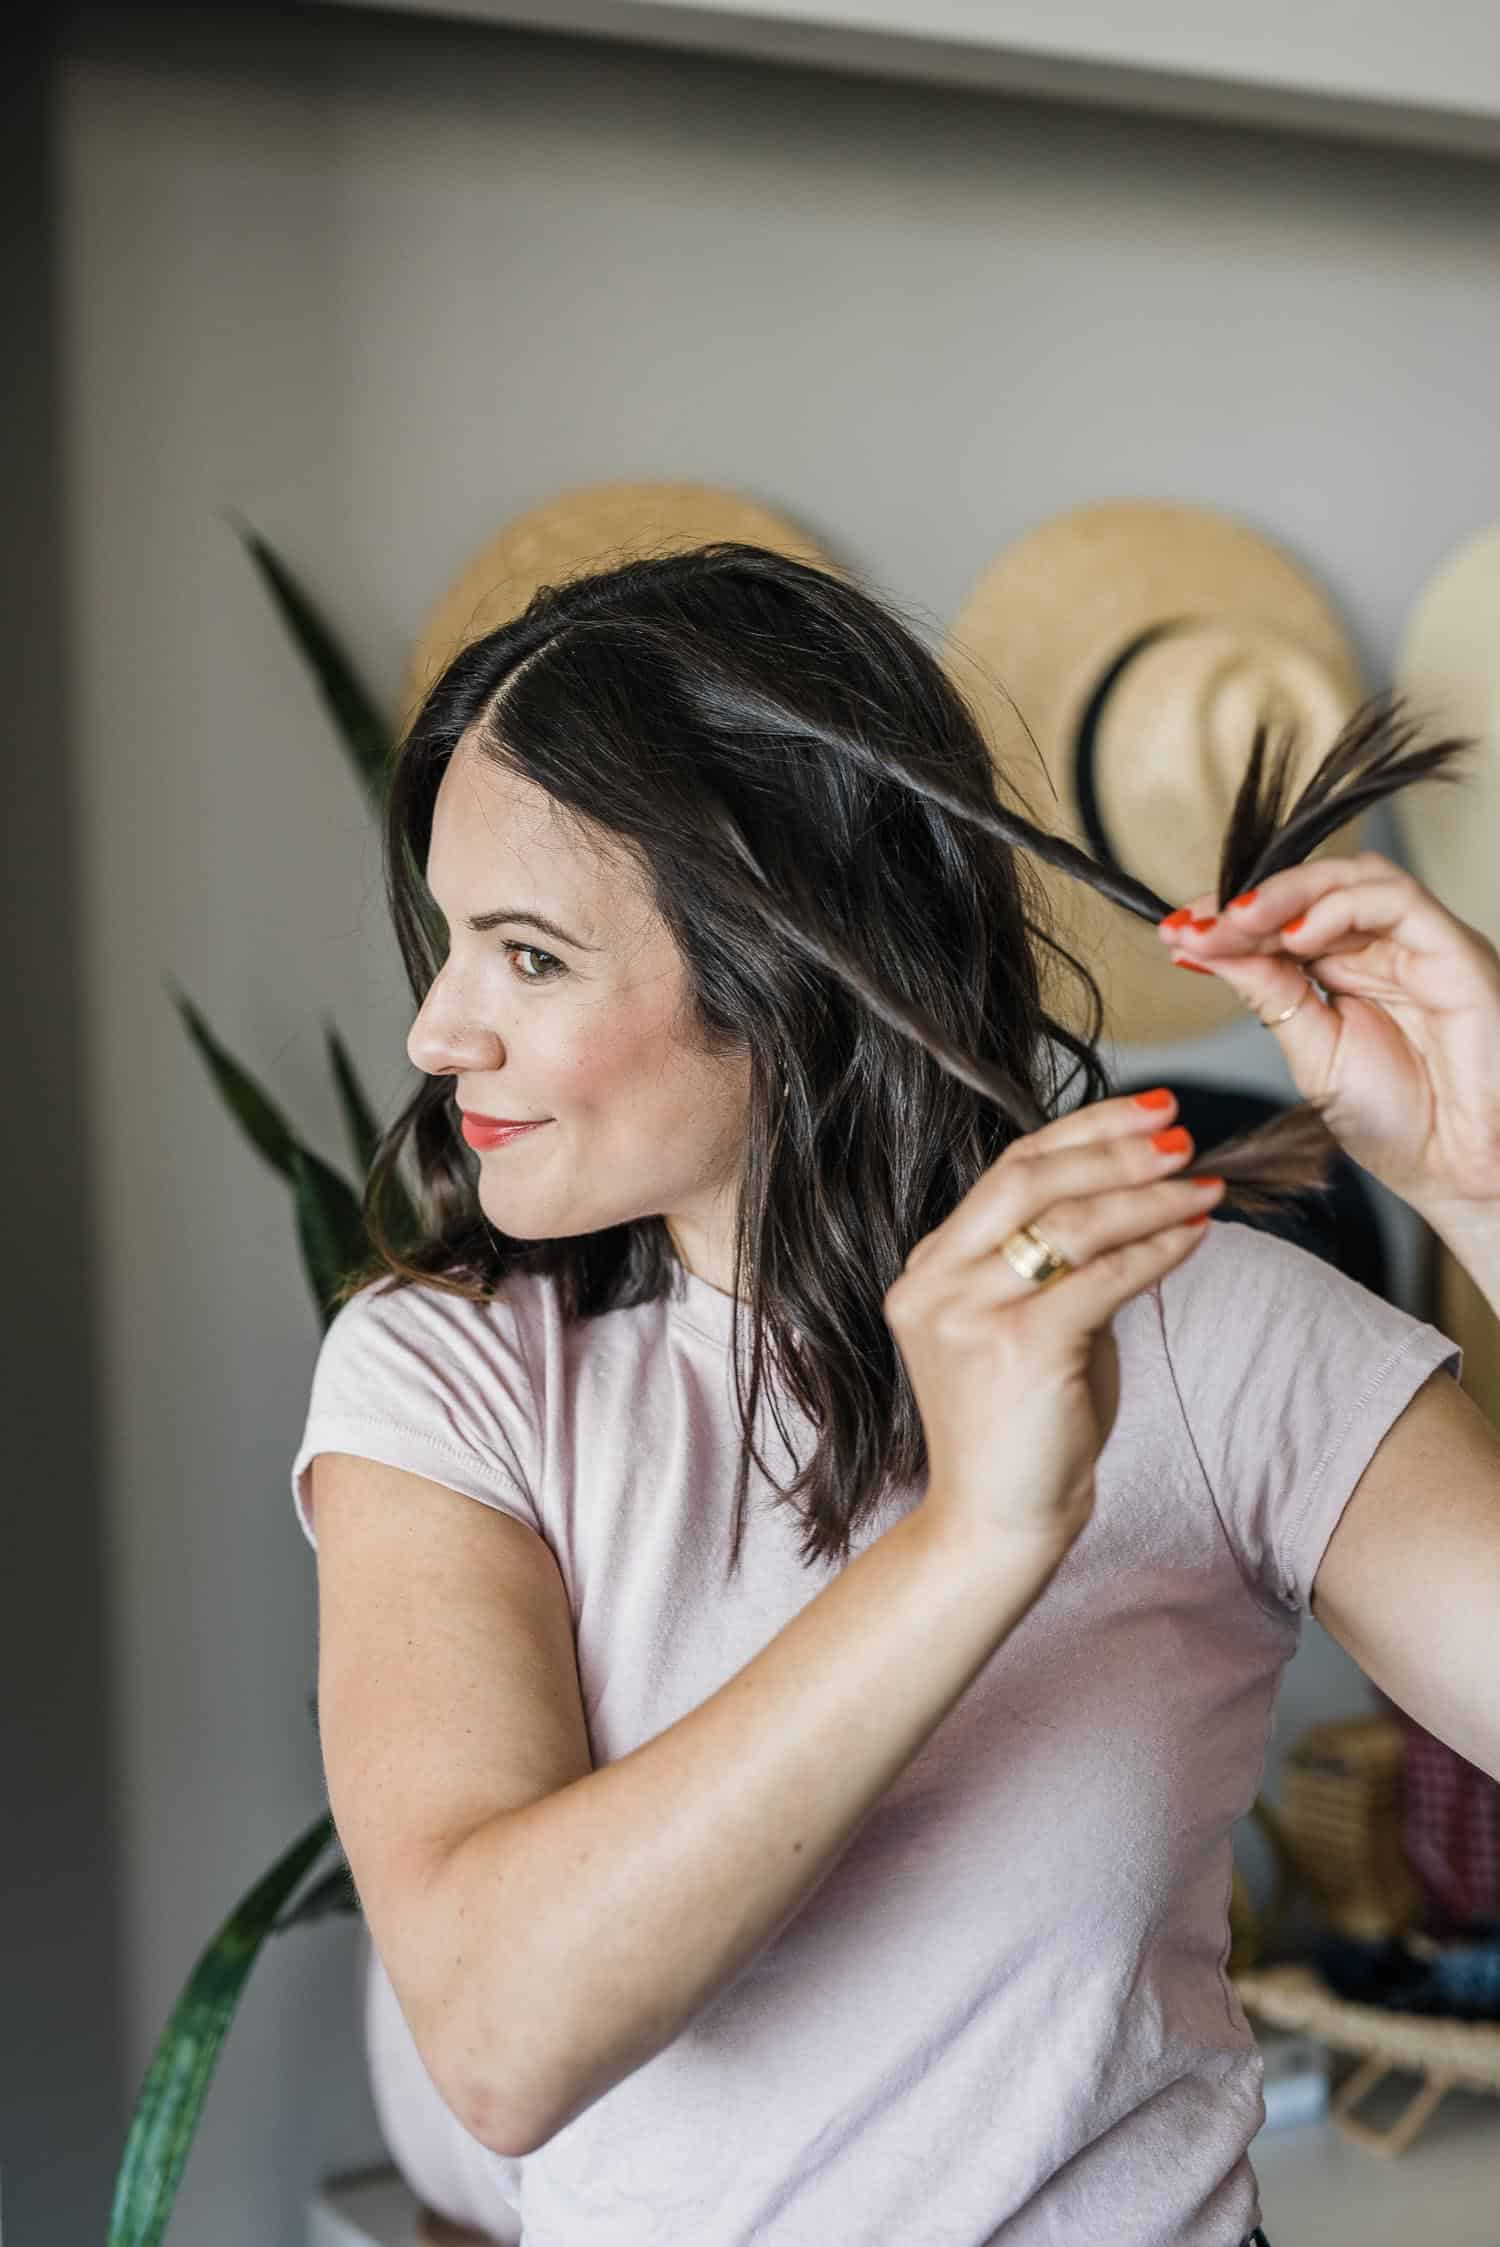 The french rope braid hair tutorial is the simplest hairstyle you'll ever recreate.